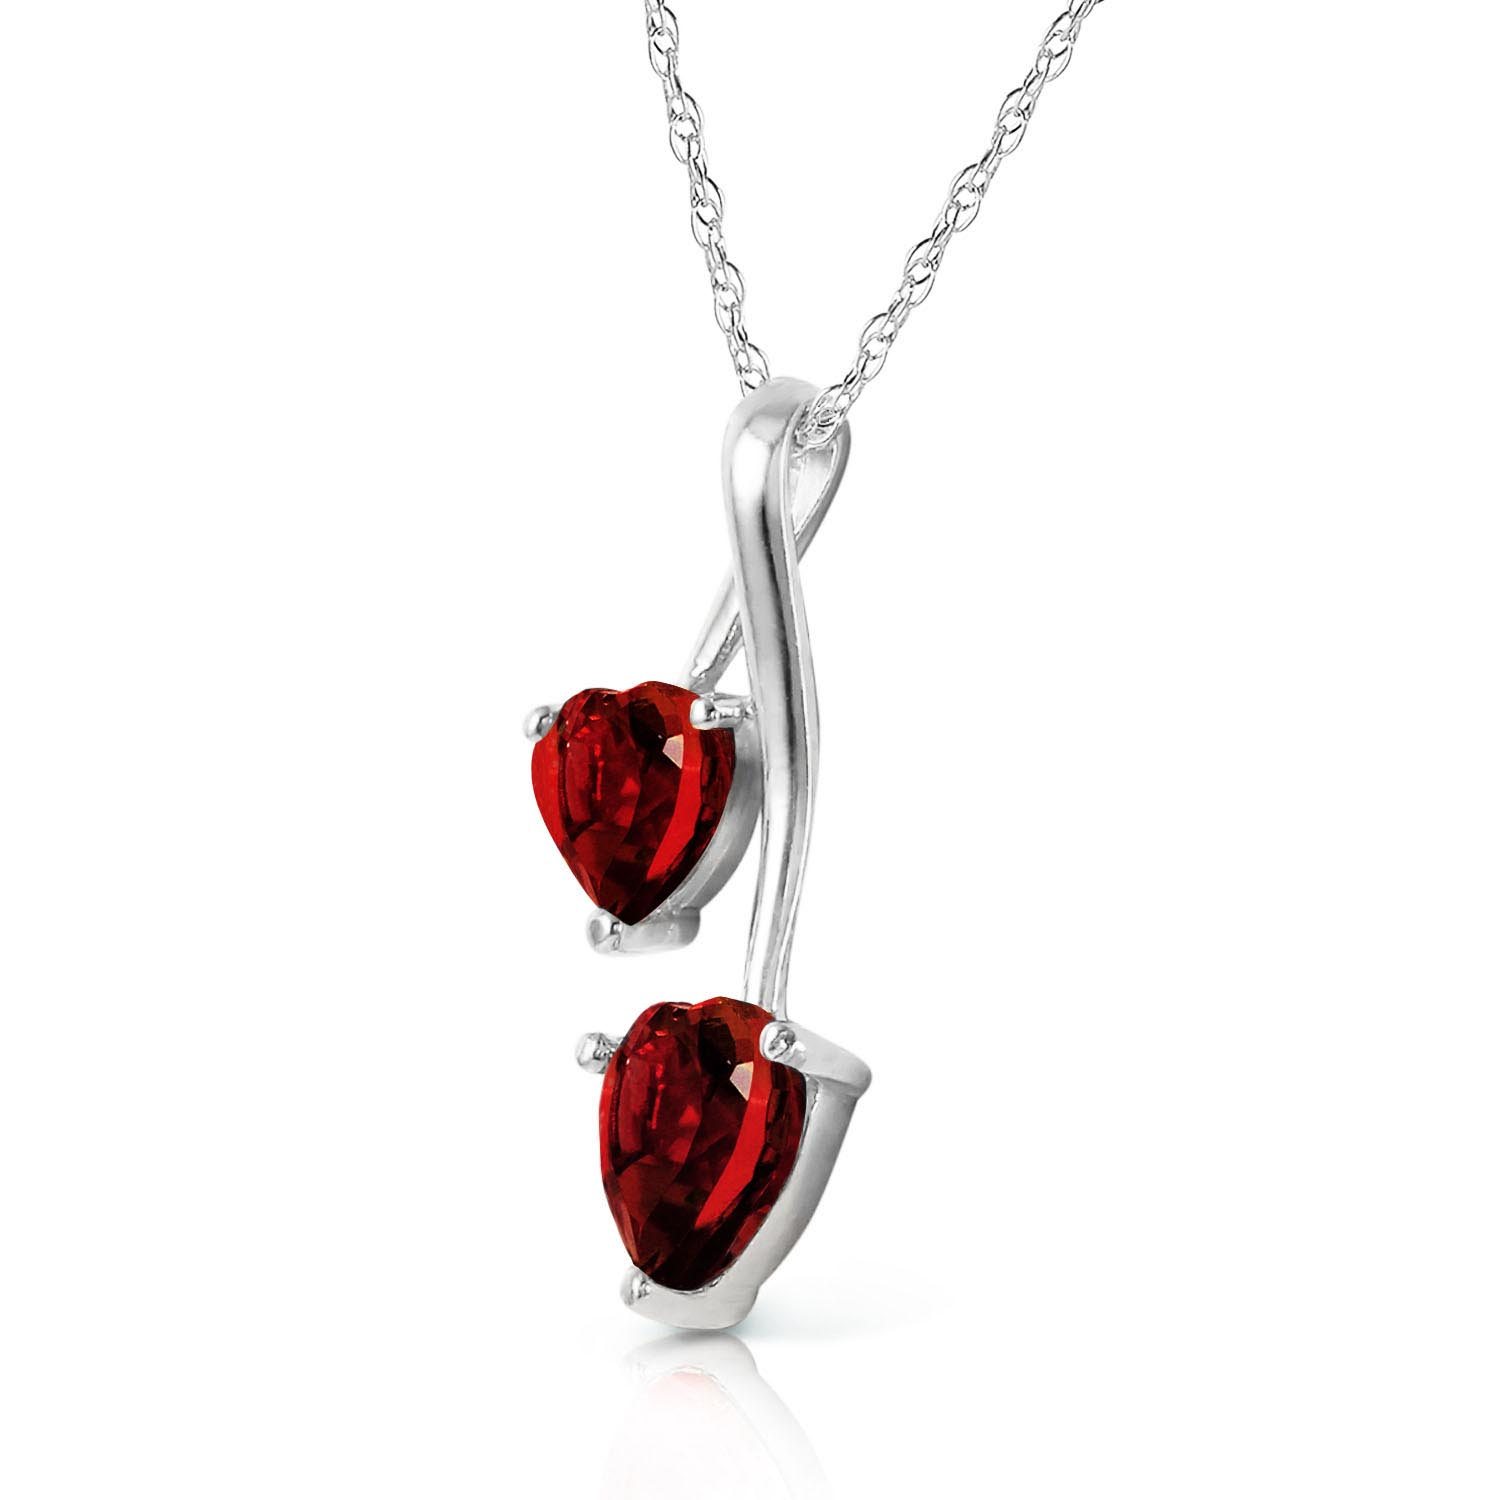 Garnet Twin Pendant Necklace 1.4 ctw in 9ct White Gold